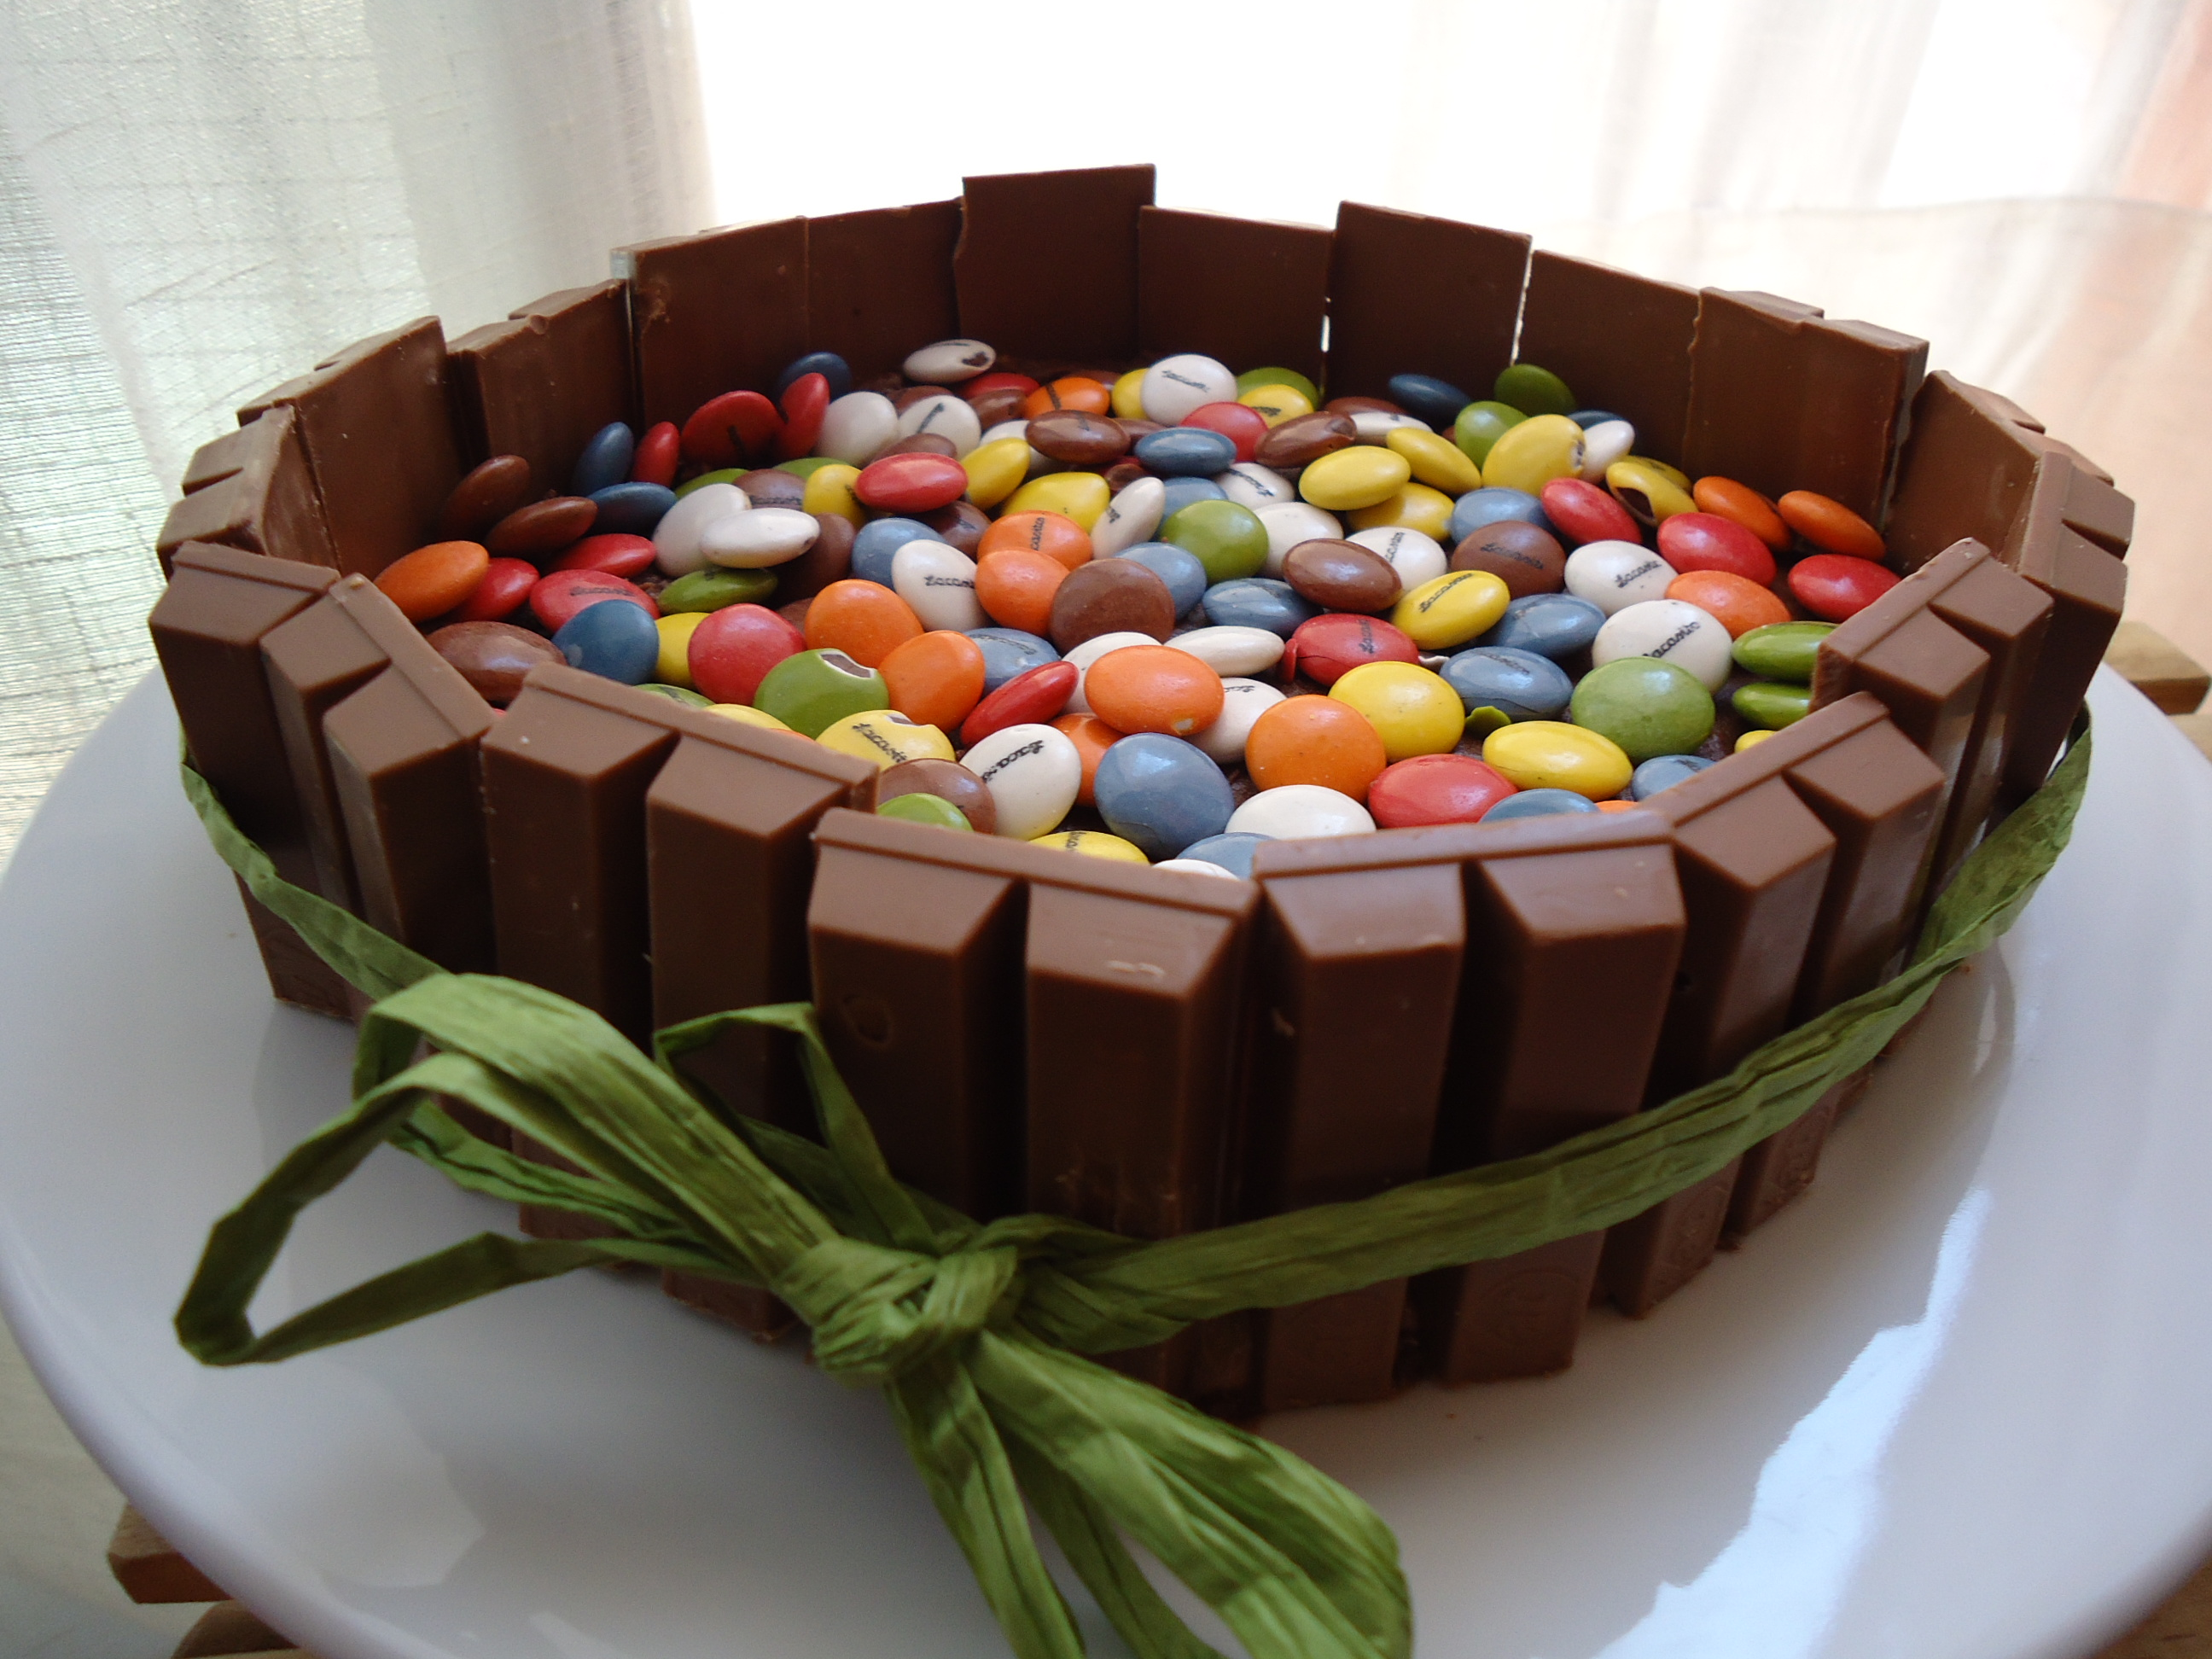 Como Decorar Un Pastel Pastel De Chocolate Decorado Con Kit Kats Galletomonster